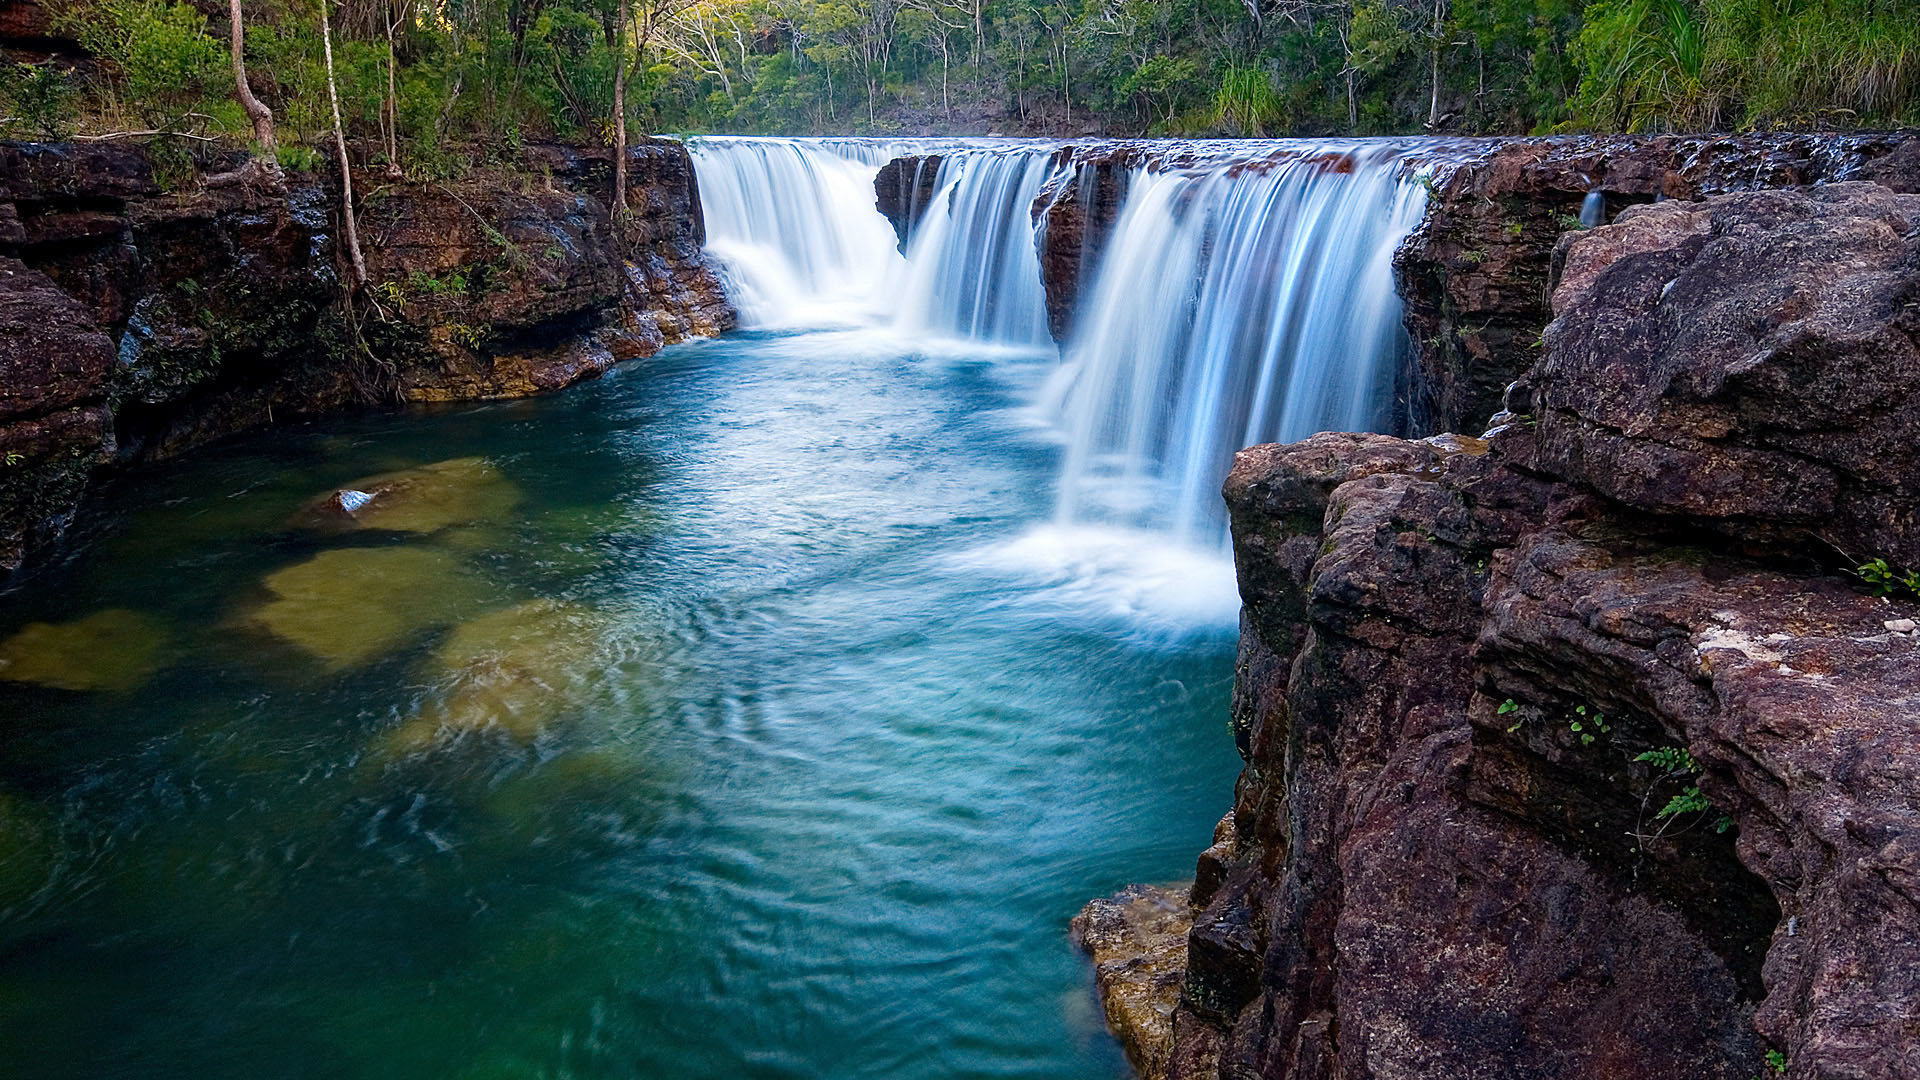 1000+ images about WATERFALL on Pinterest | Nature wallpaper